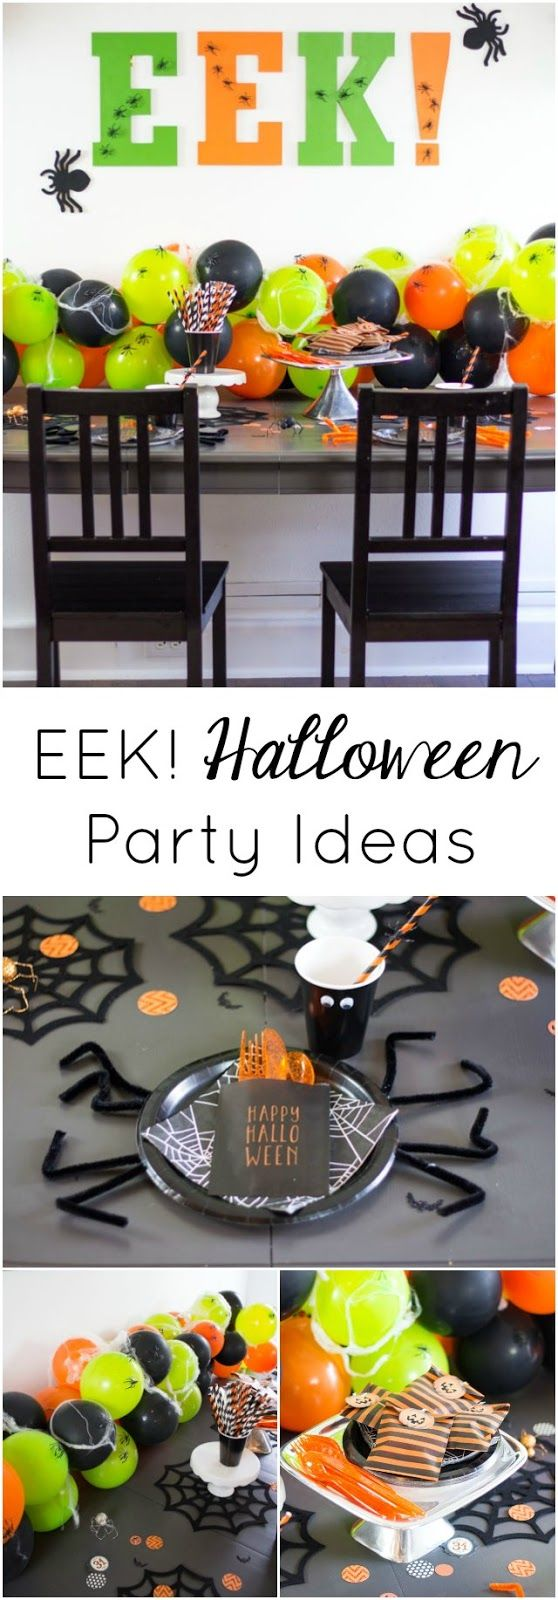 713 best Halloween DIY Projects & Ideas images on Pinterest ...